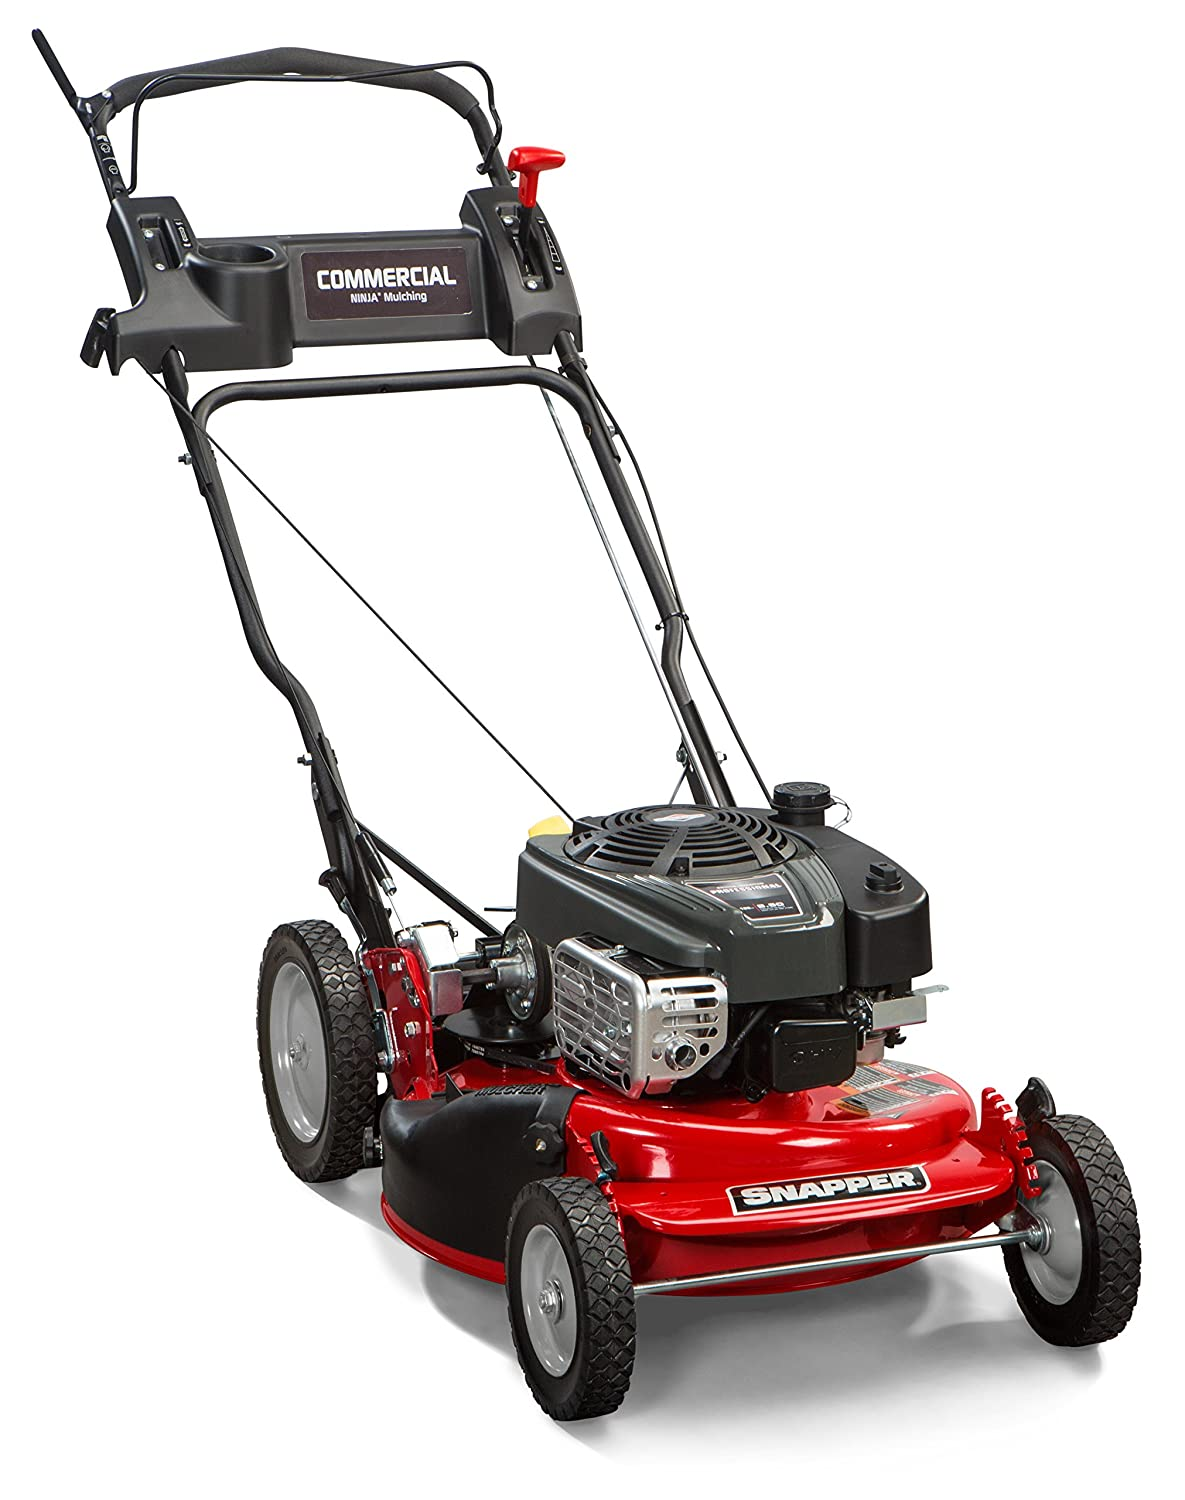 best self-propelled mulching lawn mower - Snapper